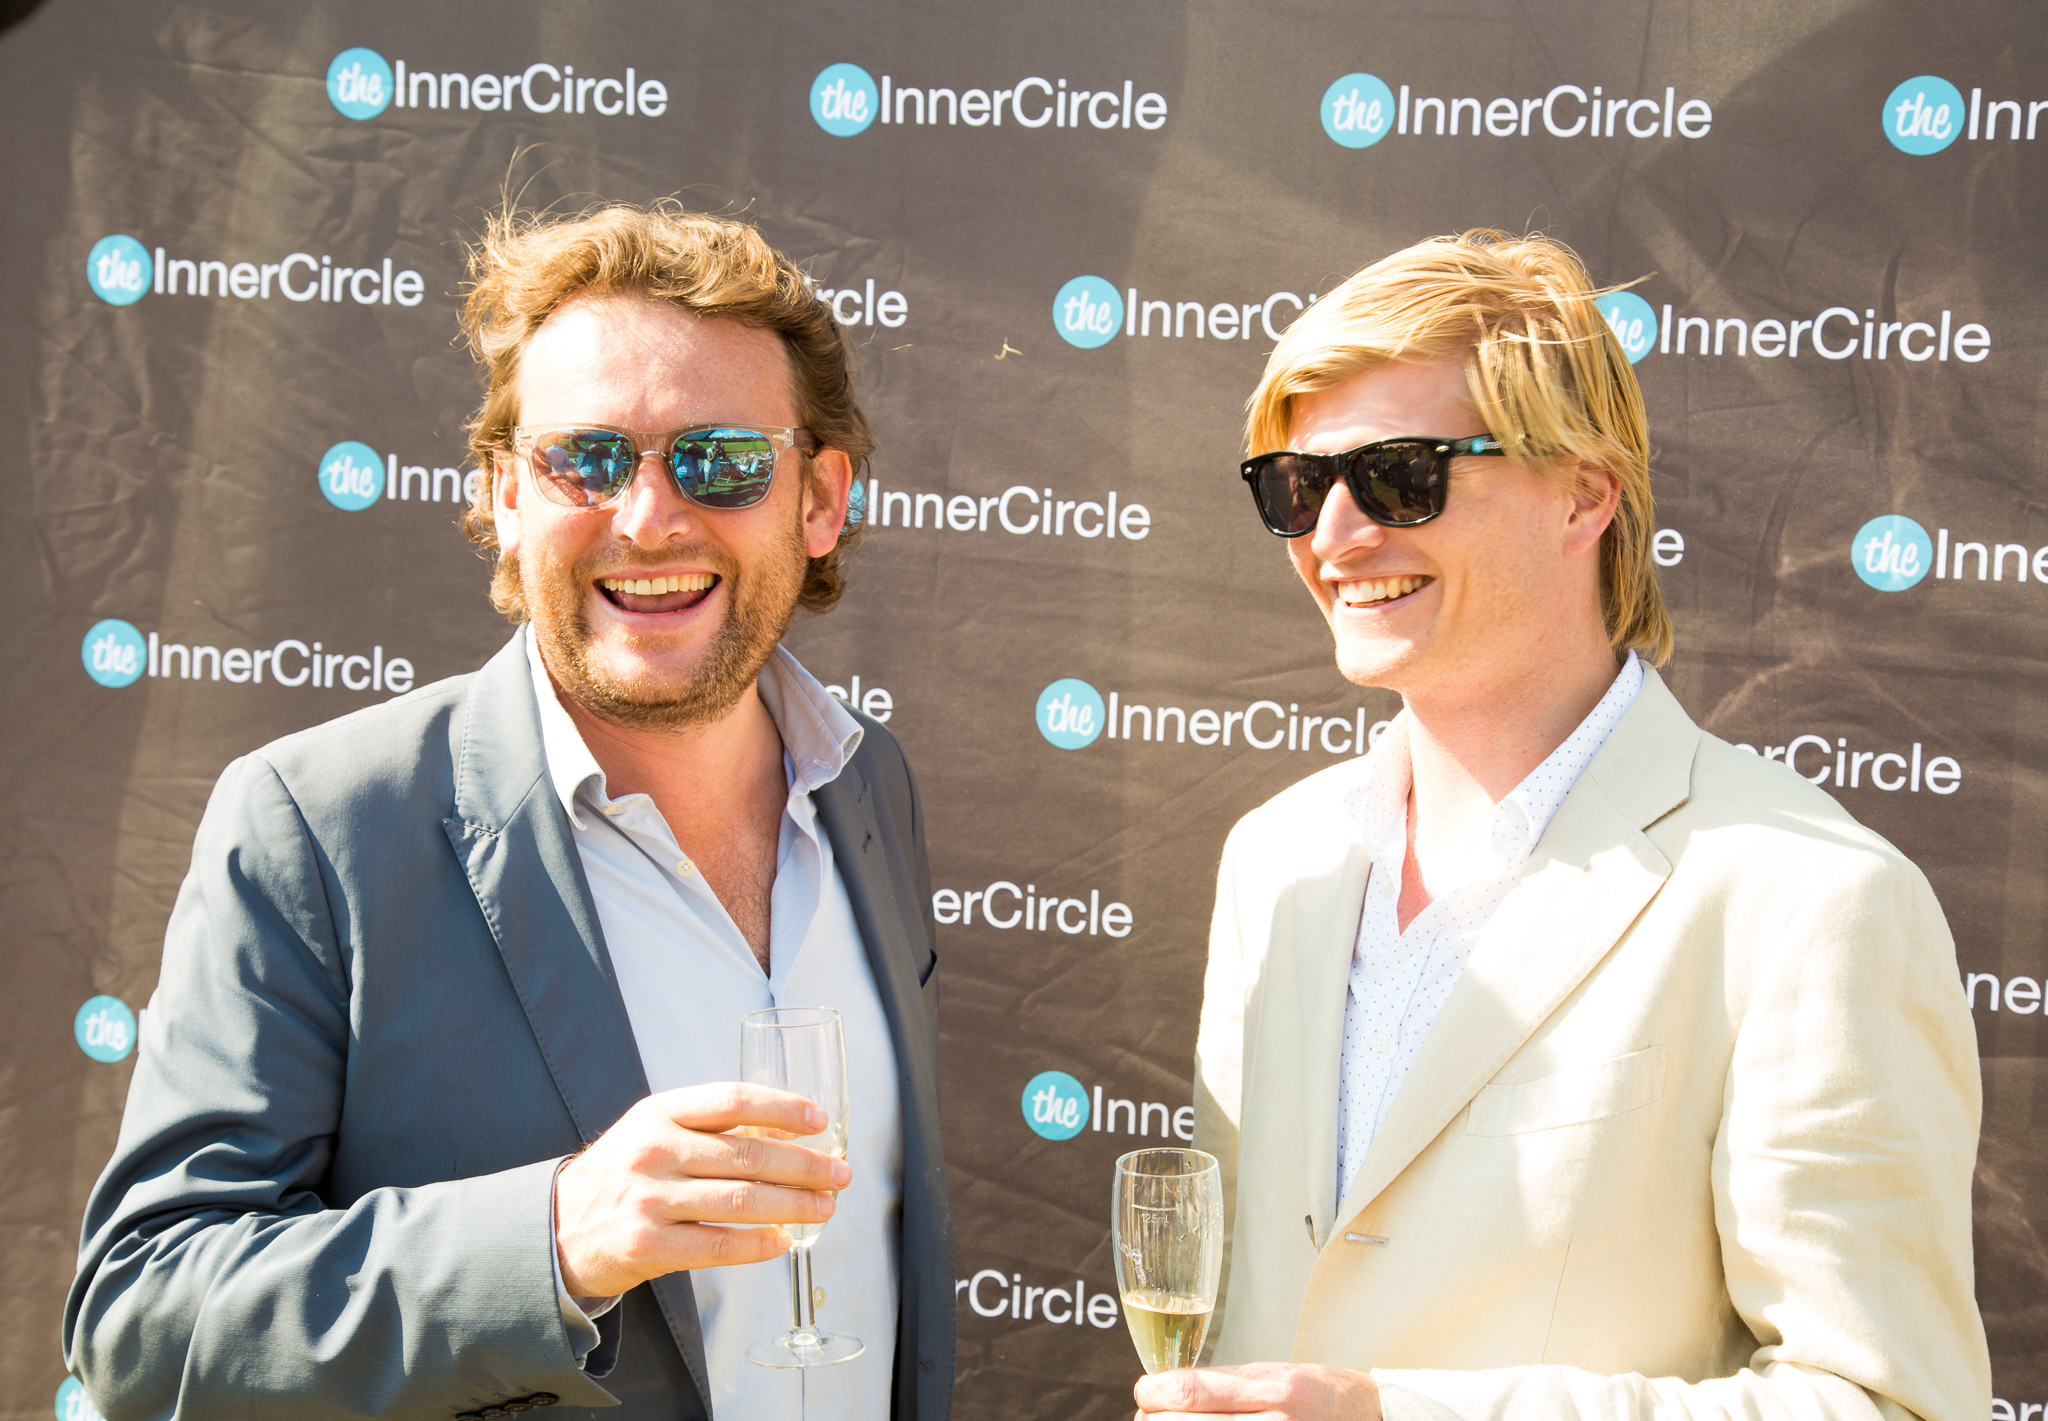 """inner circle online dating In an online dating world characterized by a photo and a quick swipe left or right, what makes the inner circle different quality over quantity, plain and simple """"when i was single, i was."""